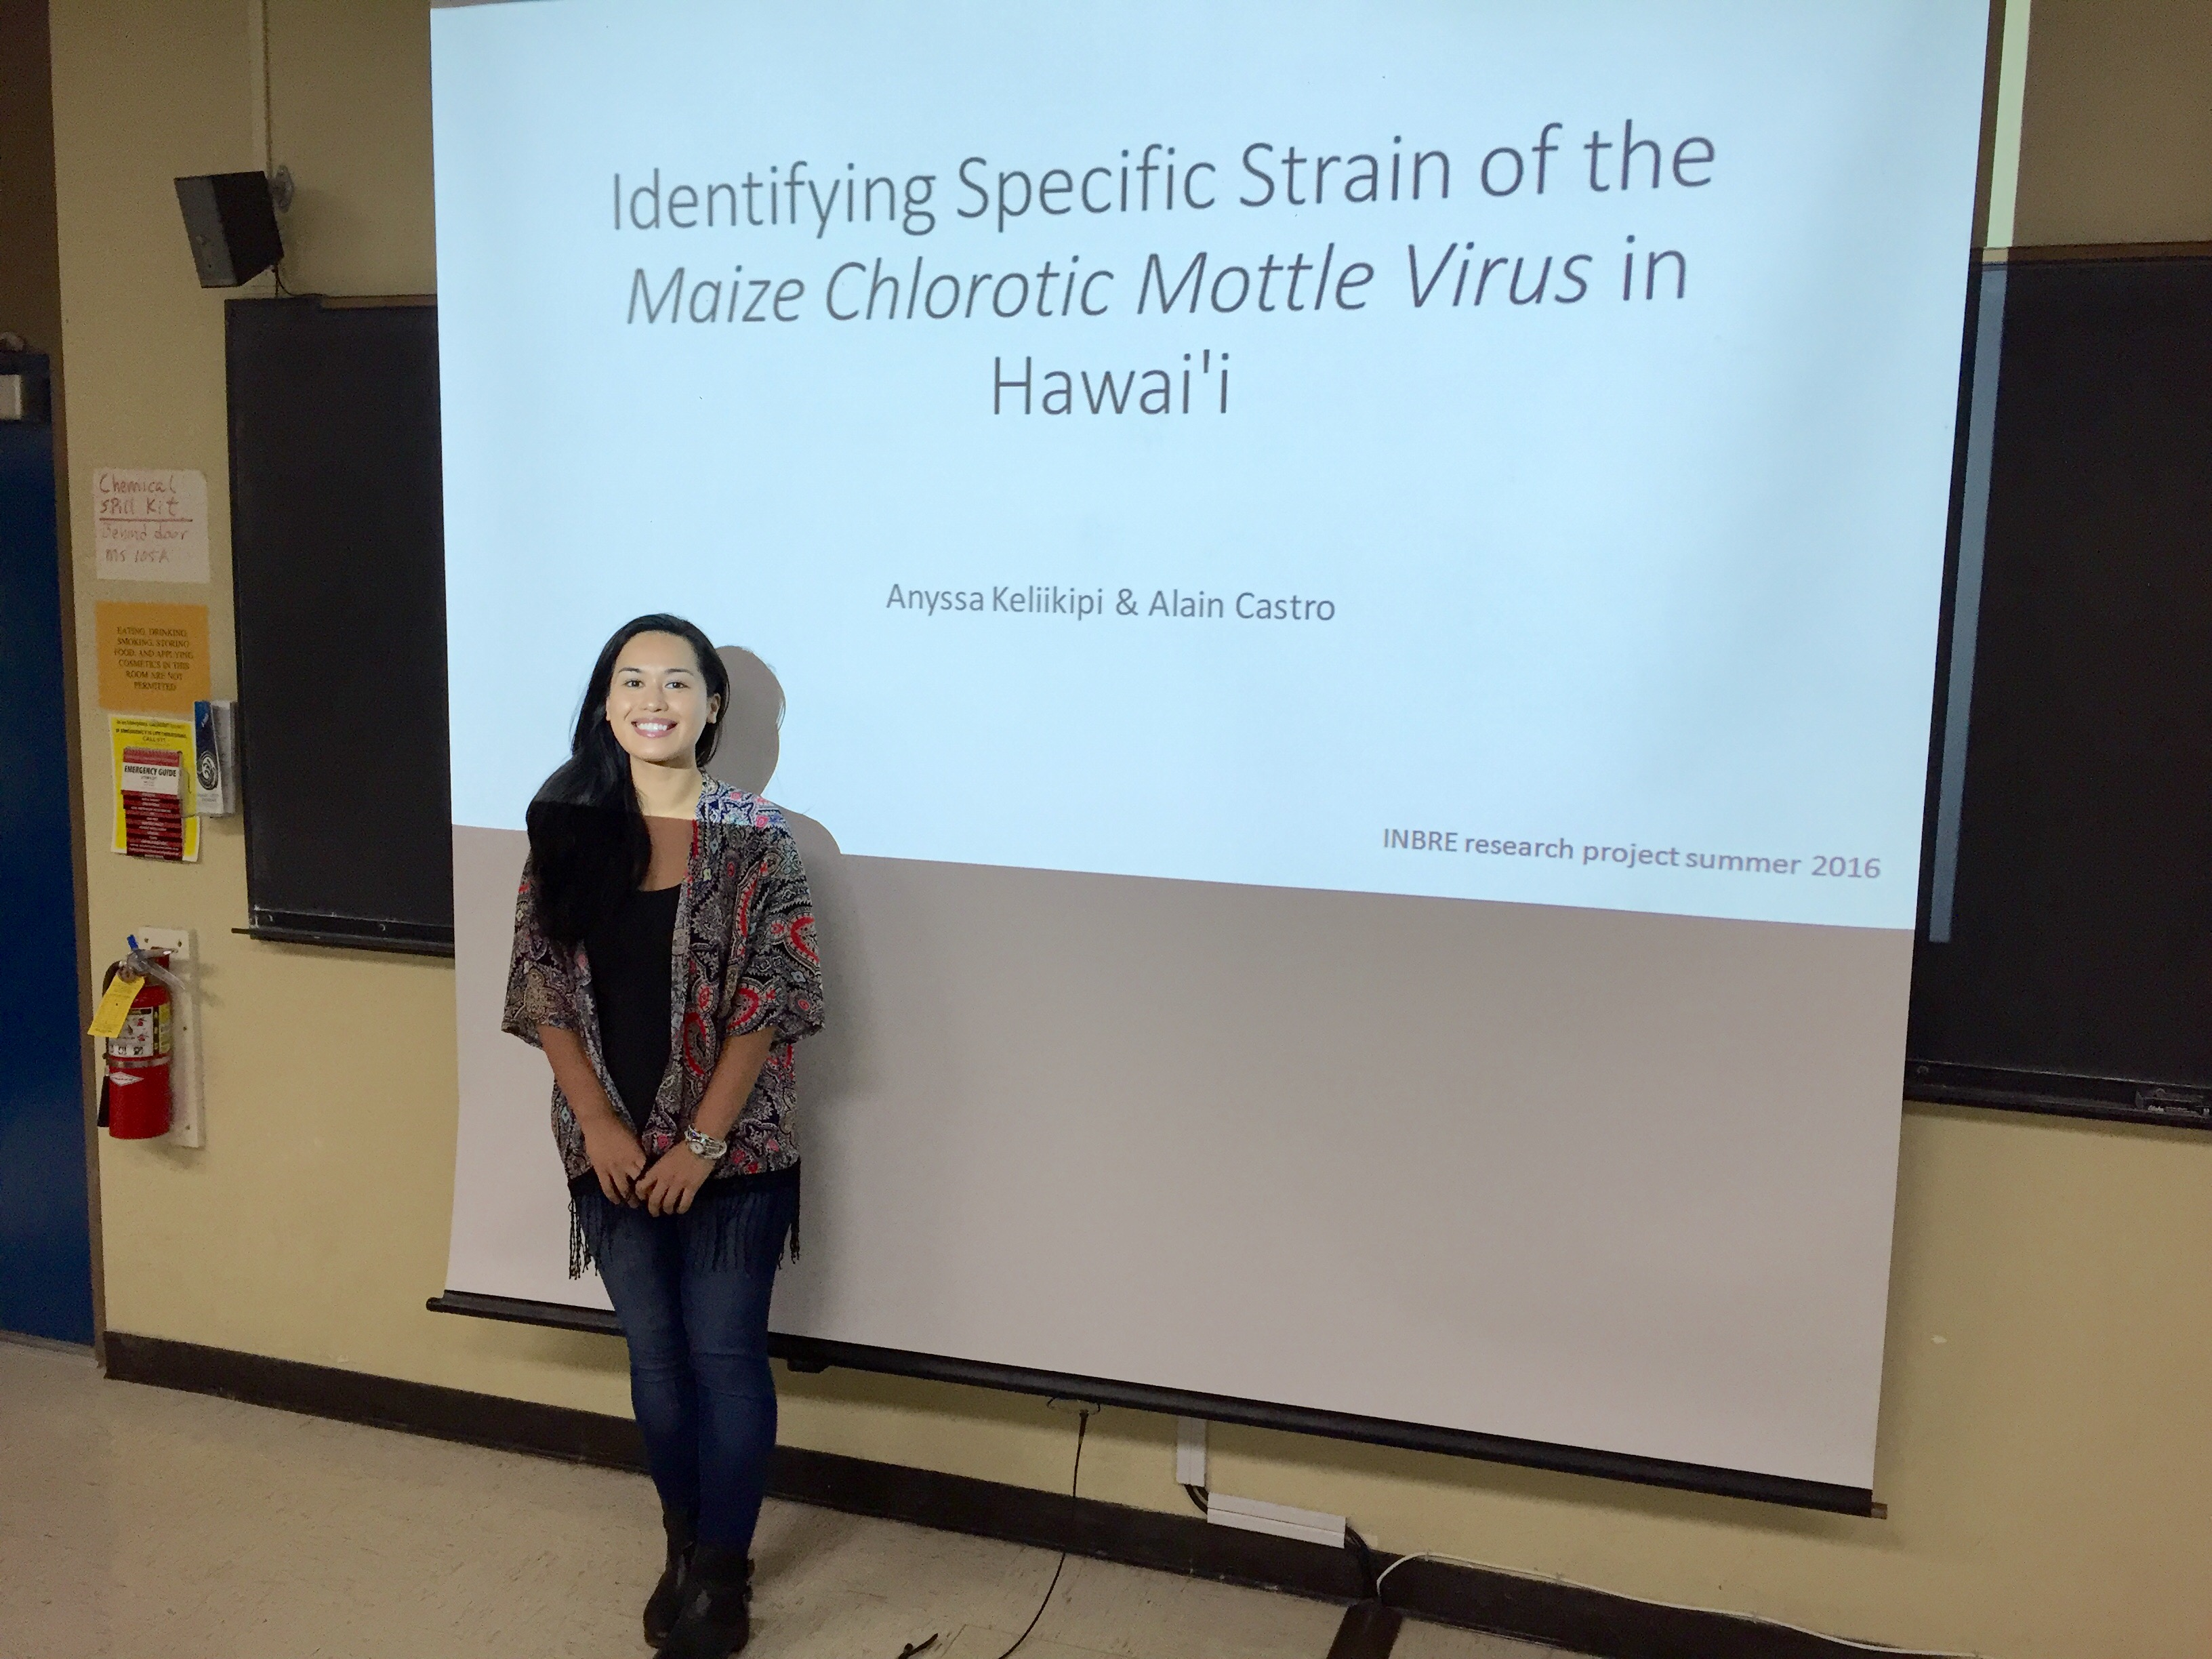 """Identifying Specific Strain of the Maize Chlorotic Mottle Virus in Hawaii"" by Anyssa Keliikipi and Alain Castro (not present)"